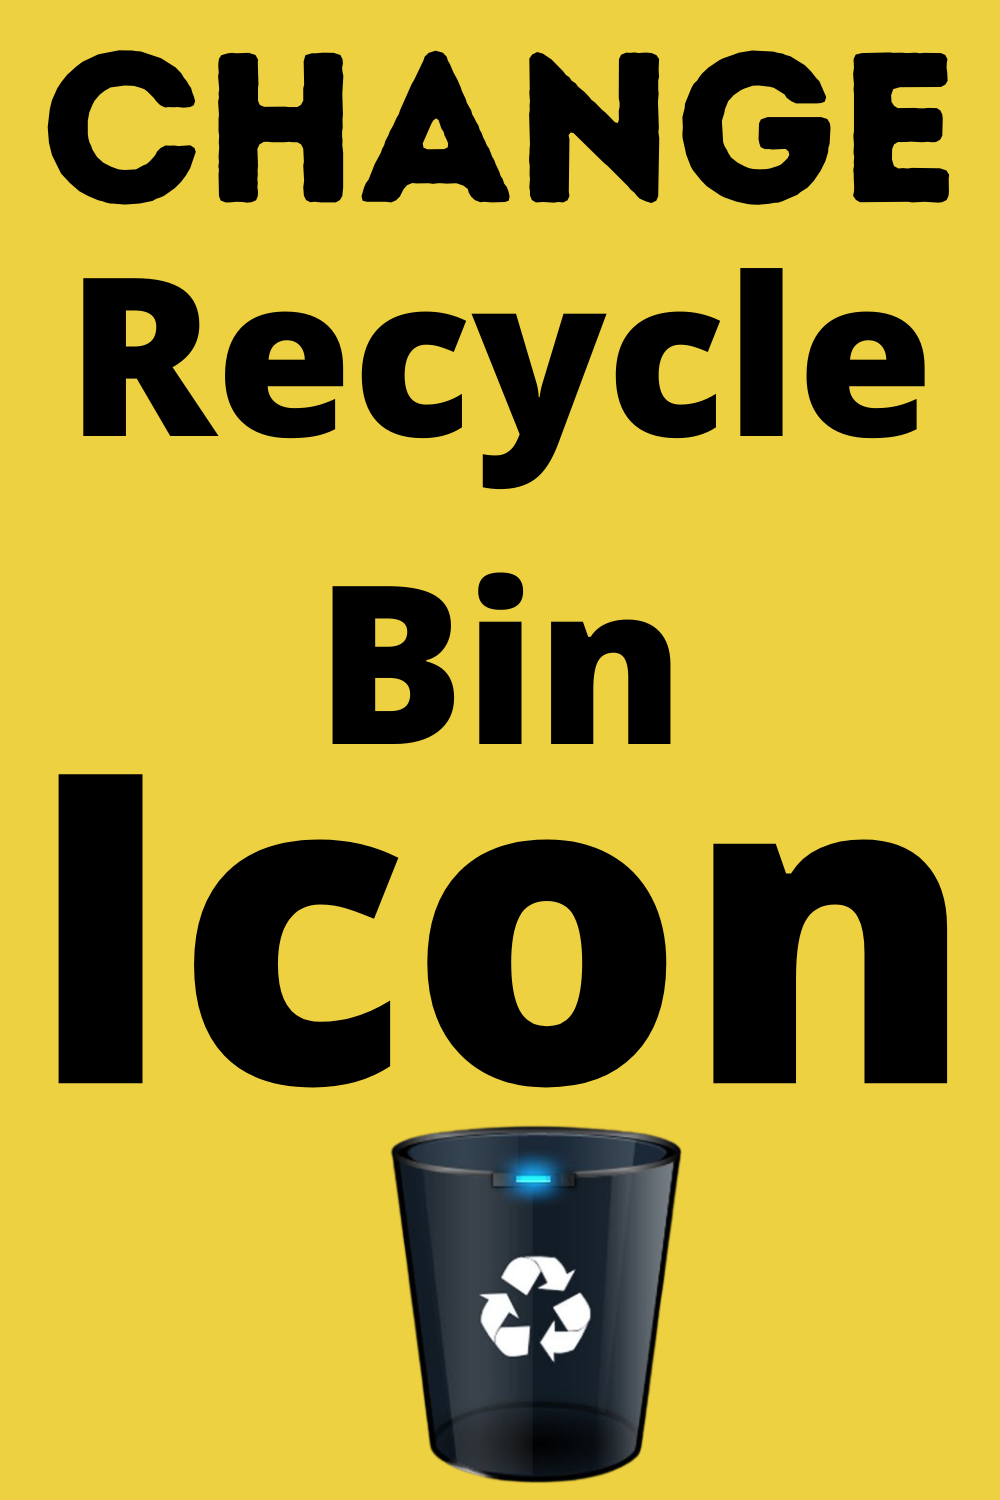 How To Change The Recycle Bin Icon In Windows 10 Customize Recycle Bin Icon Recycling Bins Recycling